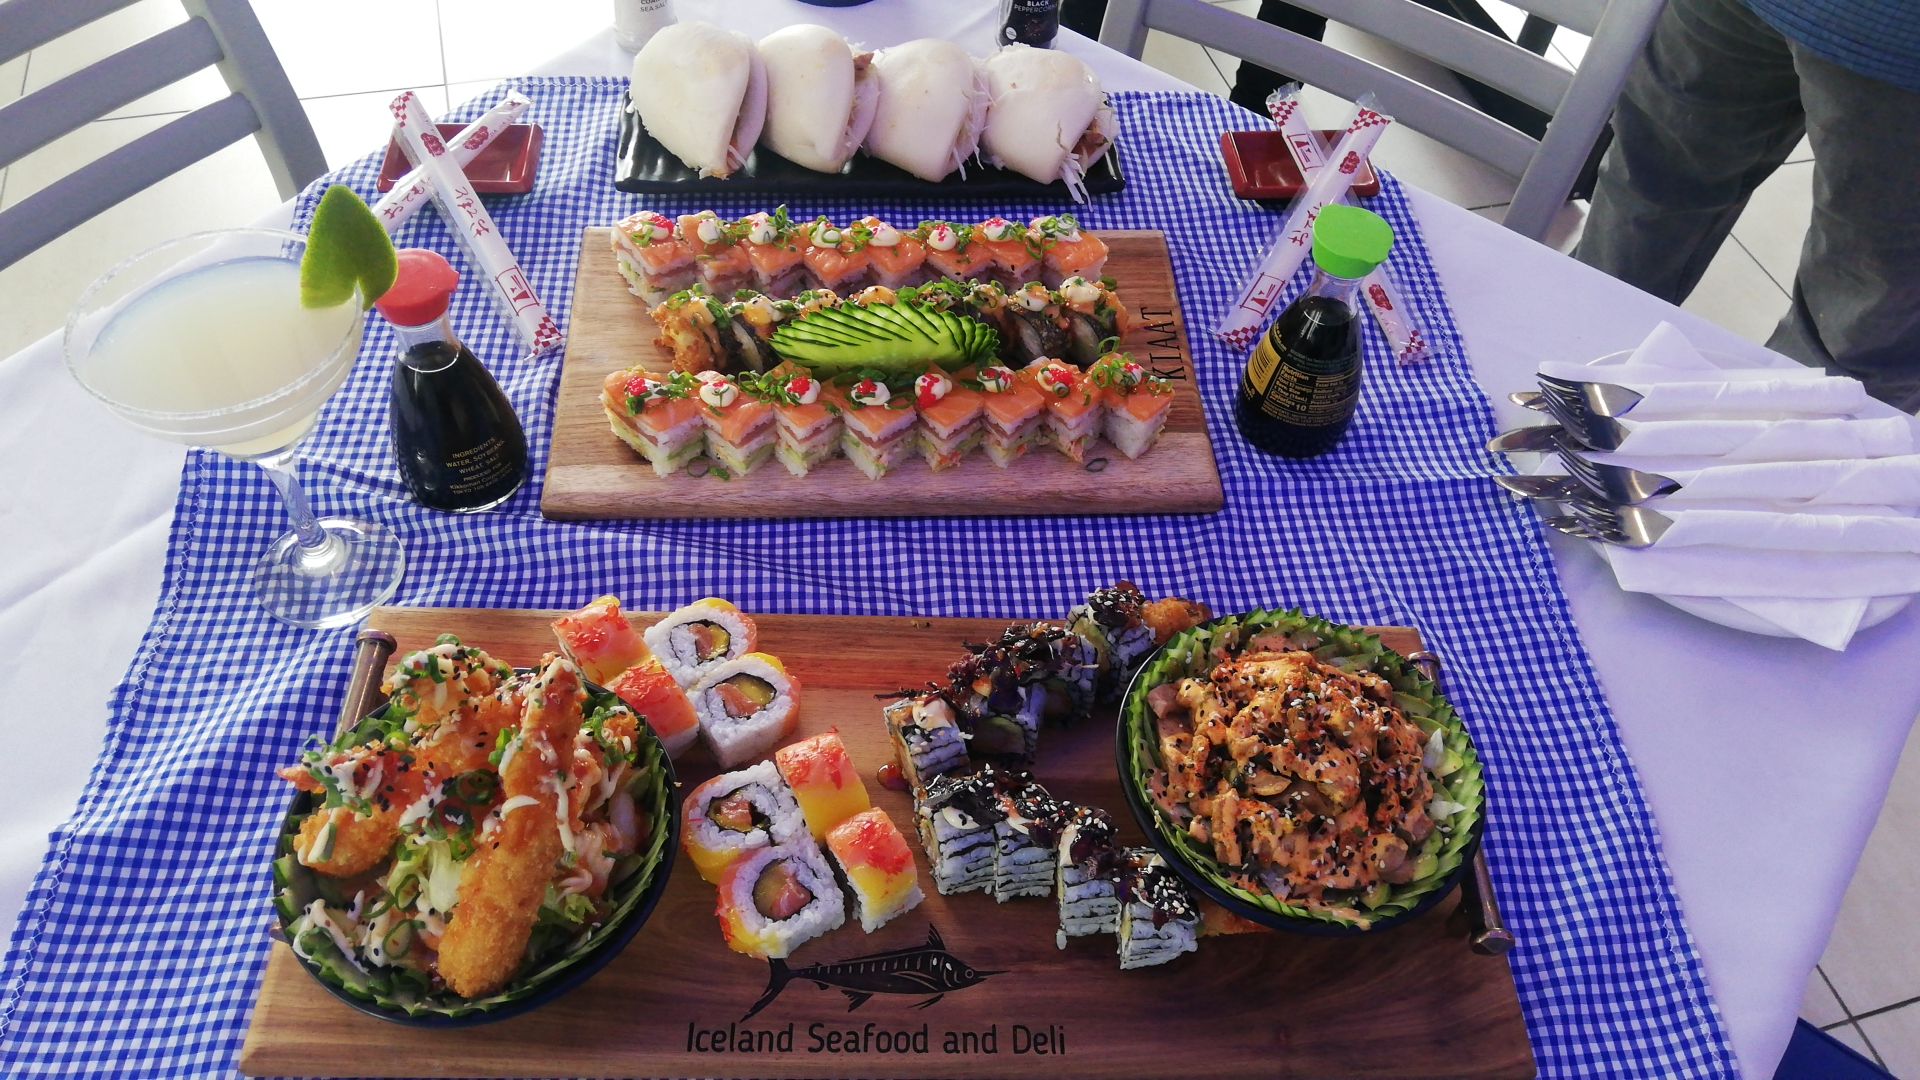 Sunninghill square | Johannesburg, Sandton, Mall, Shopping Centre, Convenient, Near Me, South African, Local, Affordable, Quality Iceland Seafood , blue and white tablecloth sushi rolls ,cutlery wrapped, sushi platter, soy sauce ,margarita , white table chopsticks